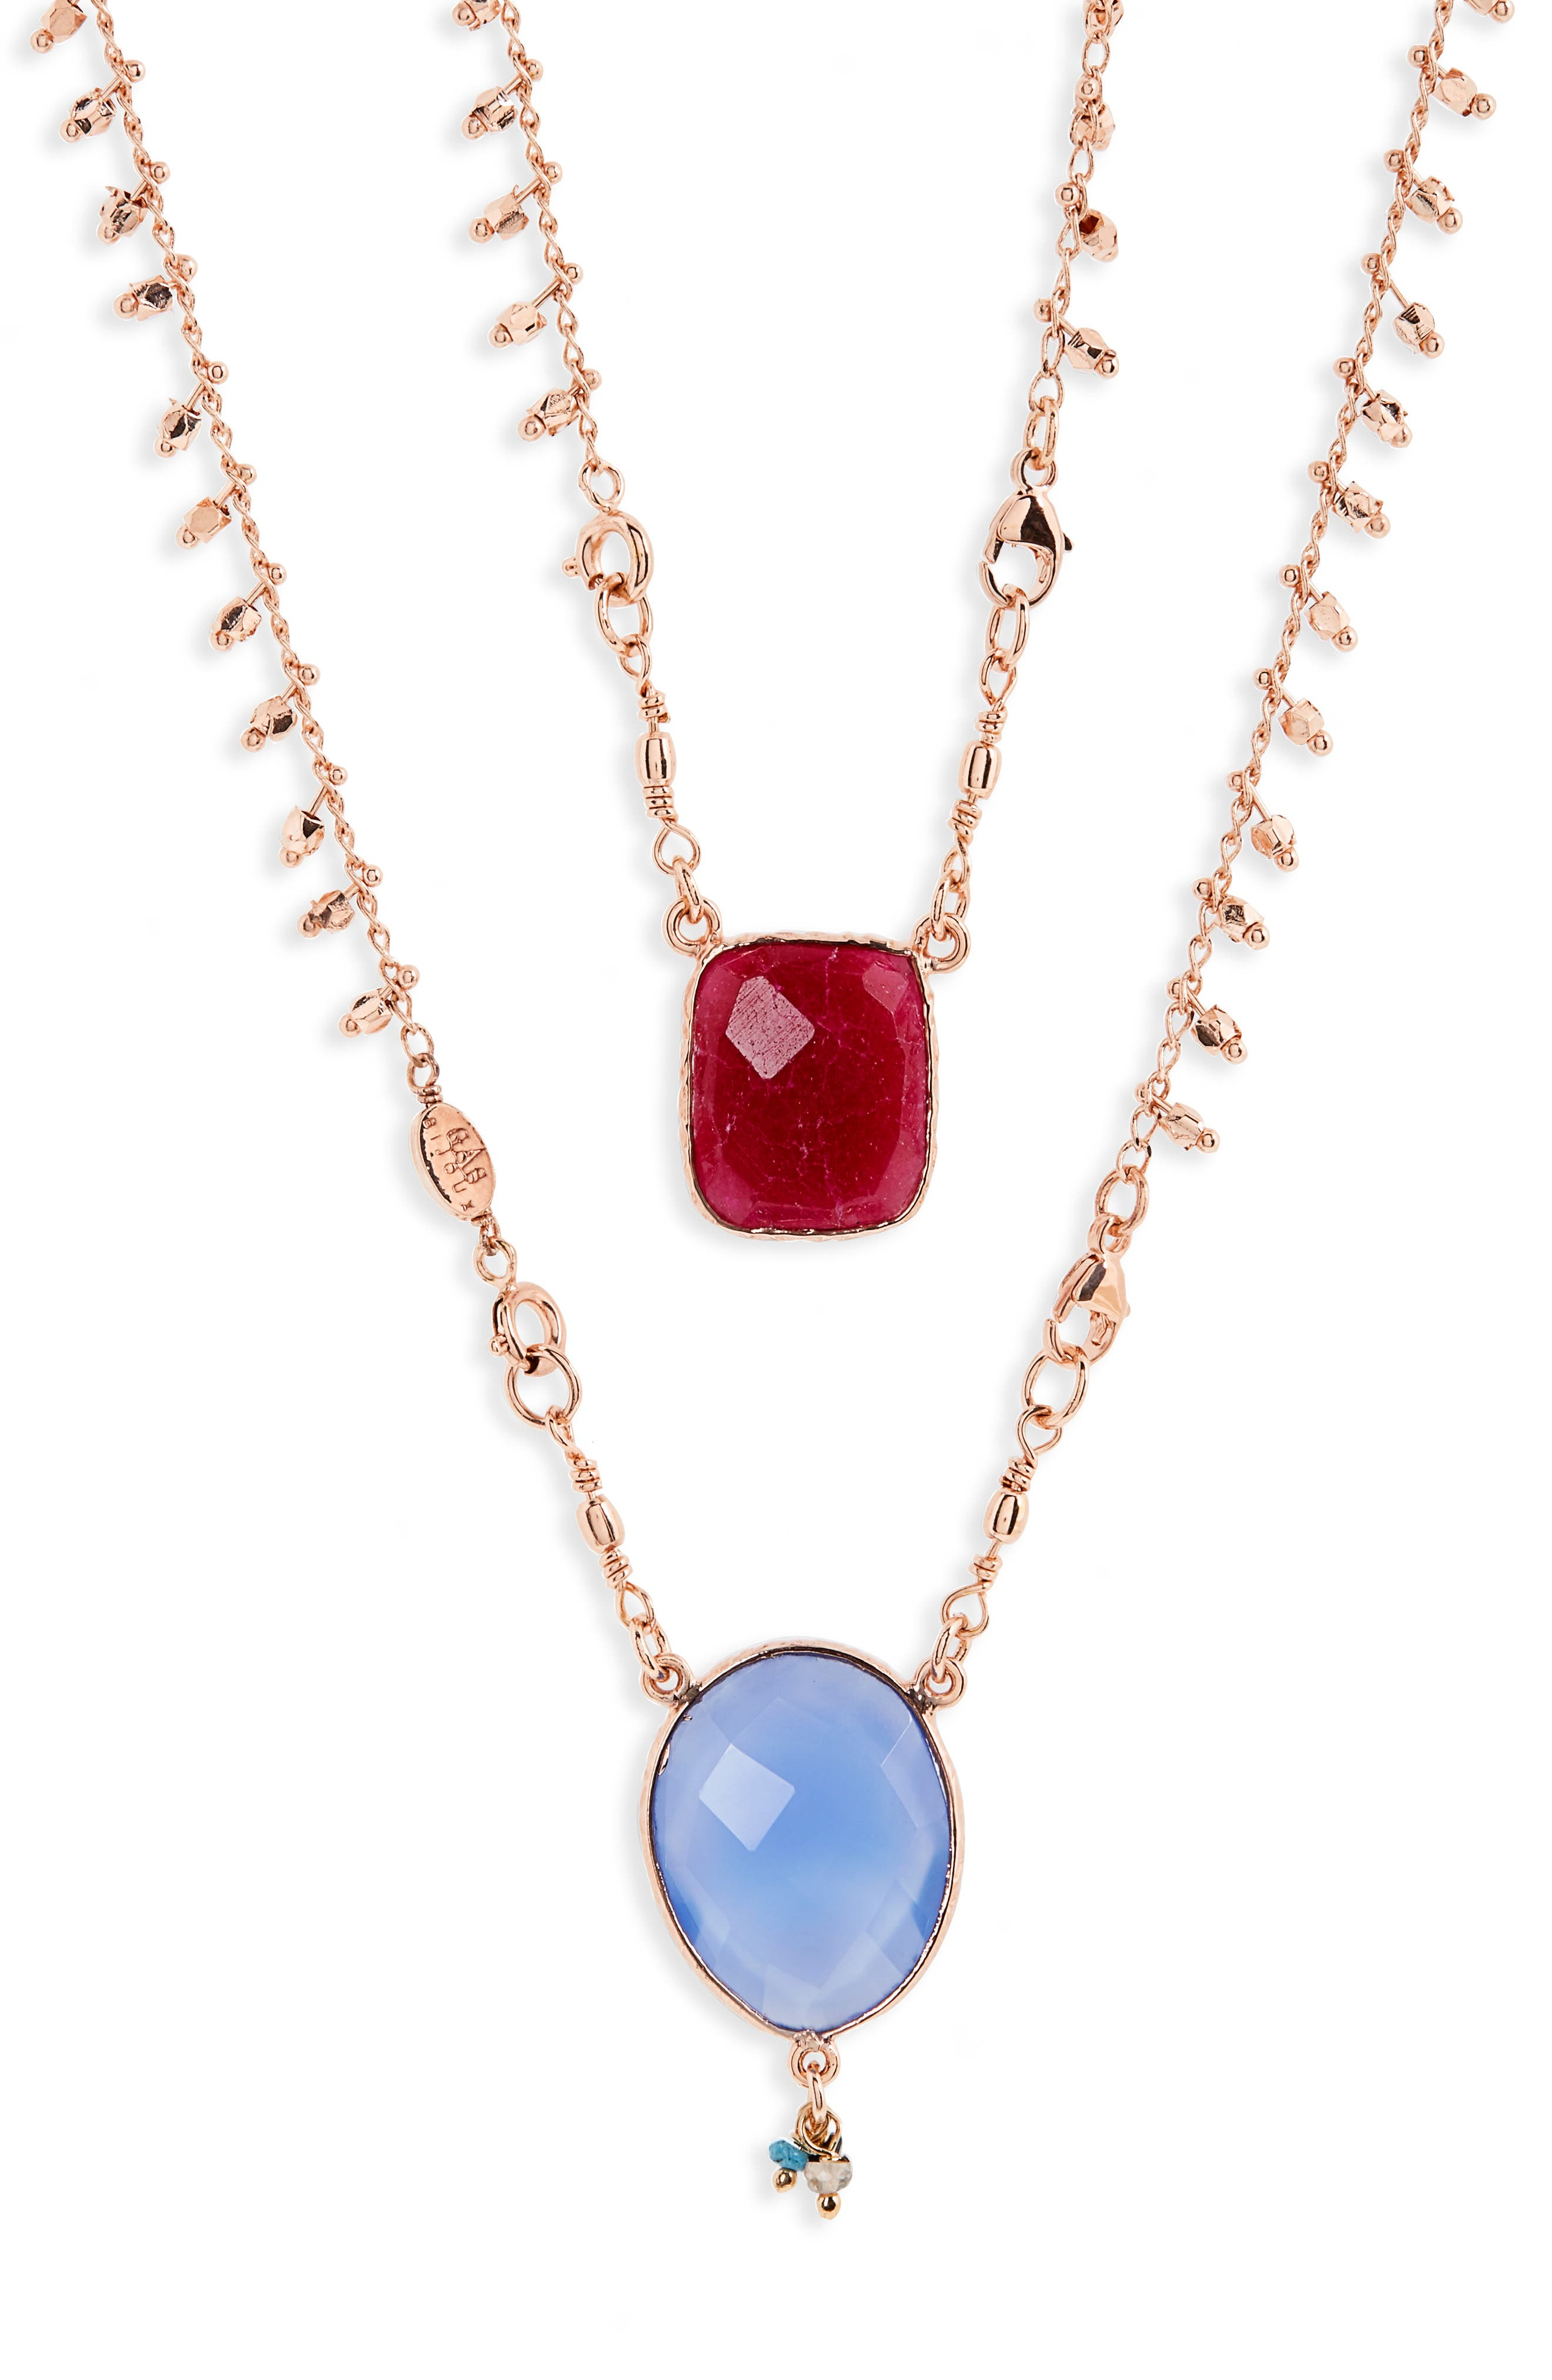 GAS BIJOUX Scapulaire Convertible Semiprecious Stone Necklace